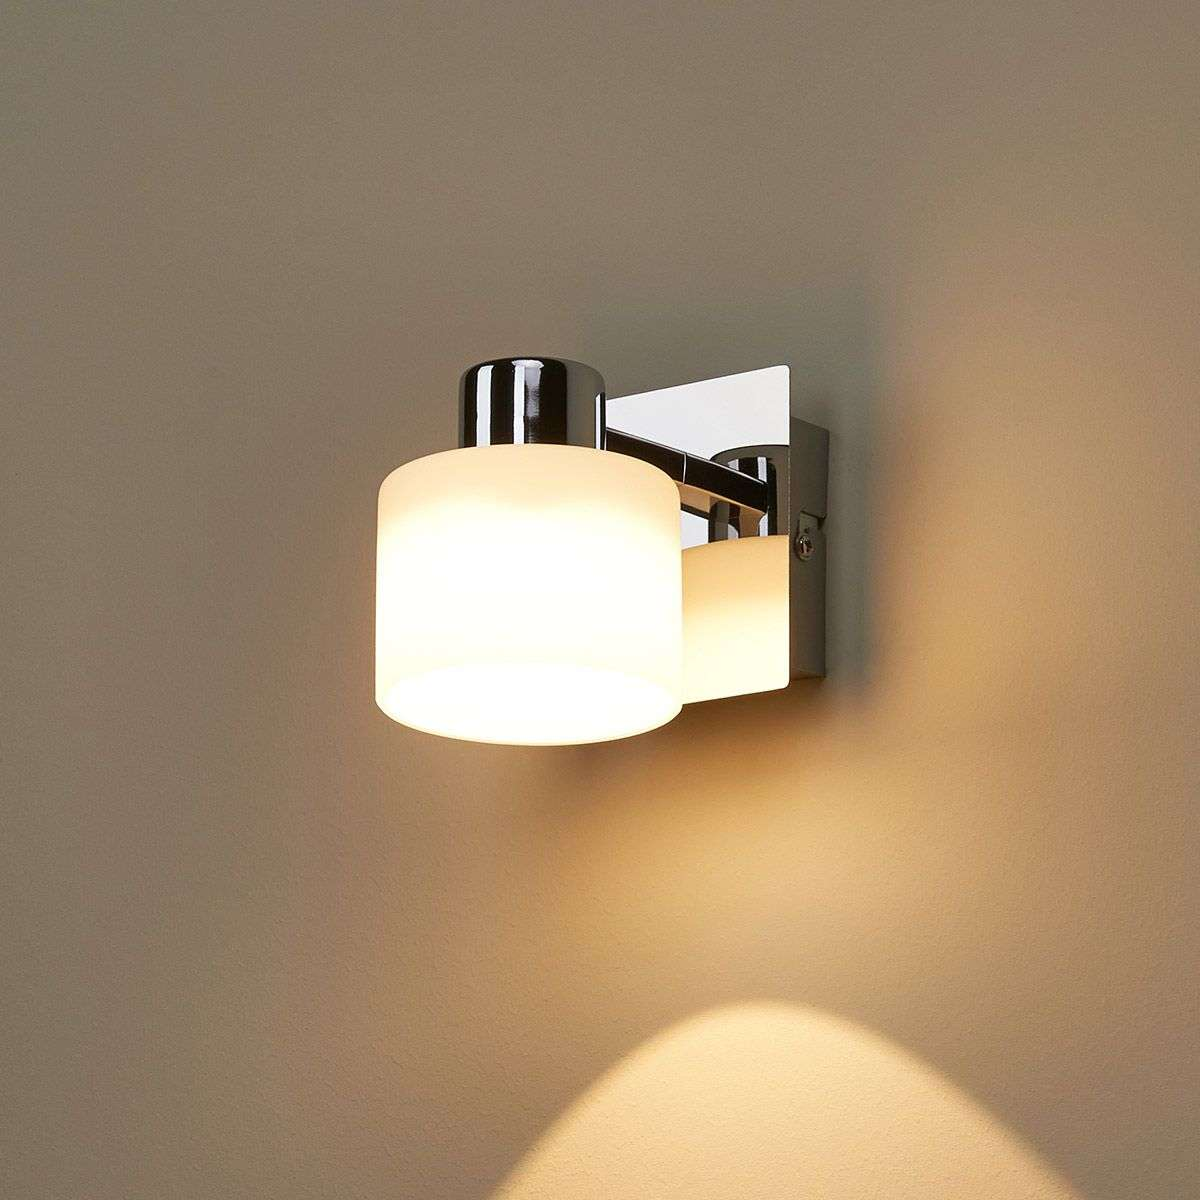 Decorative LED Wall Light Emira